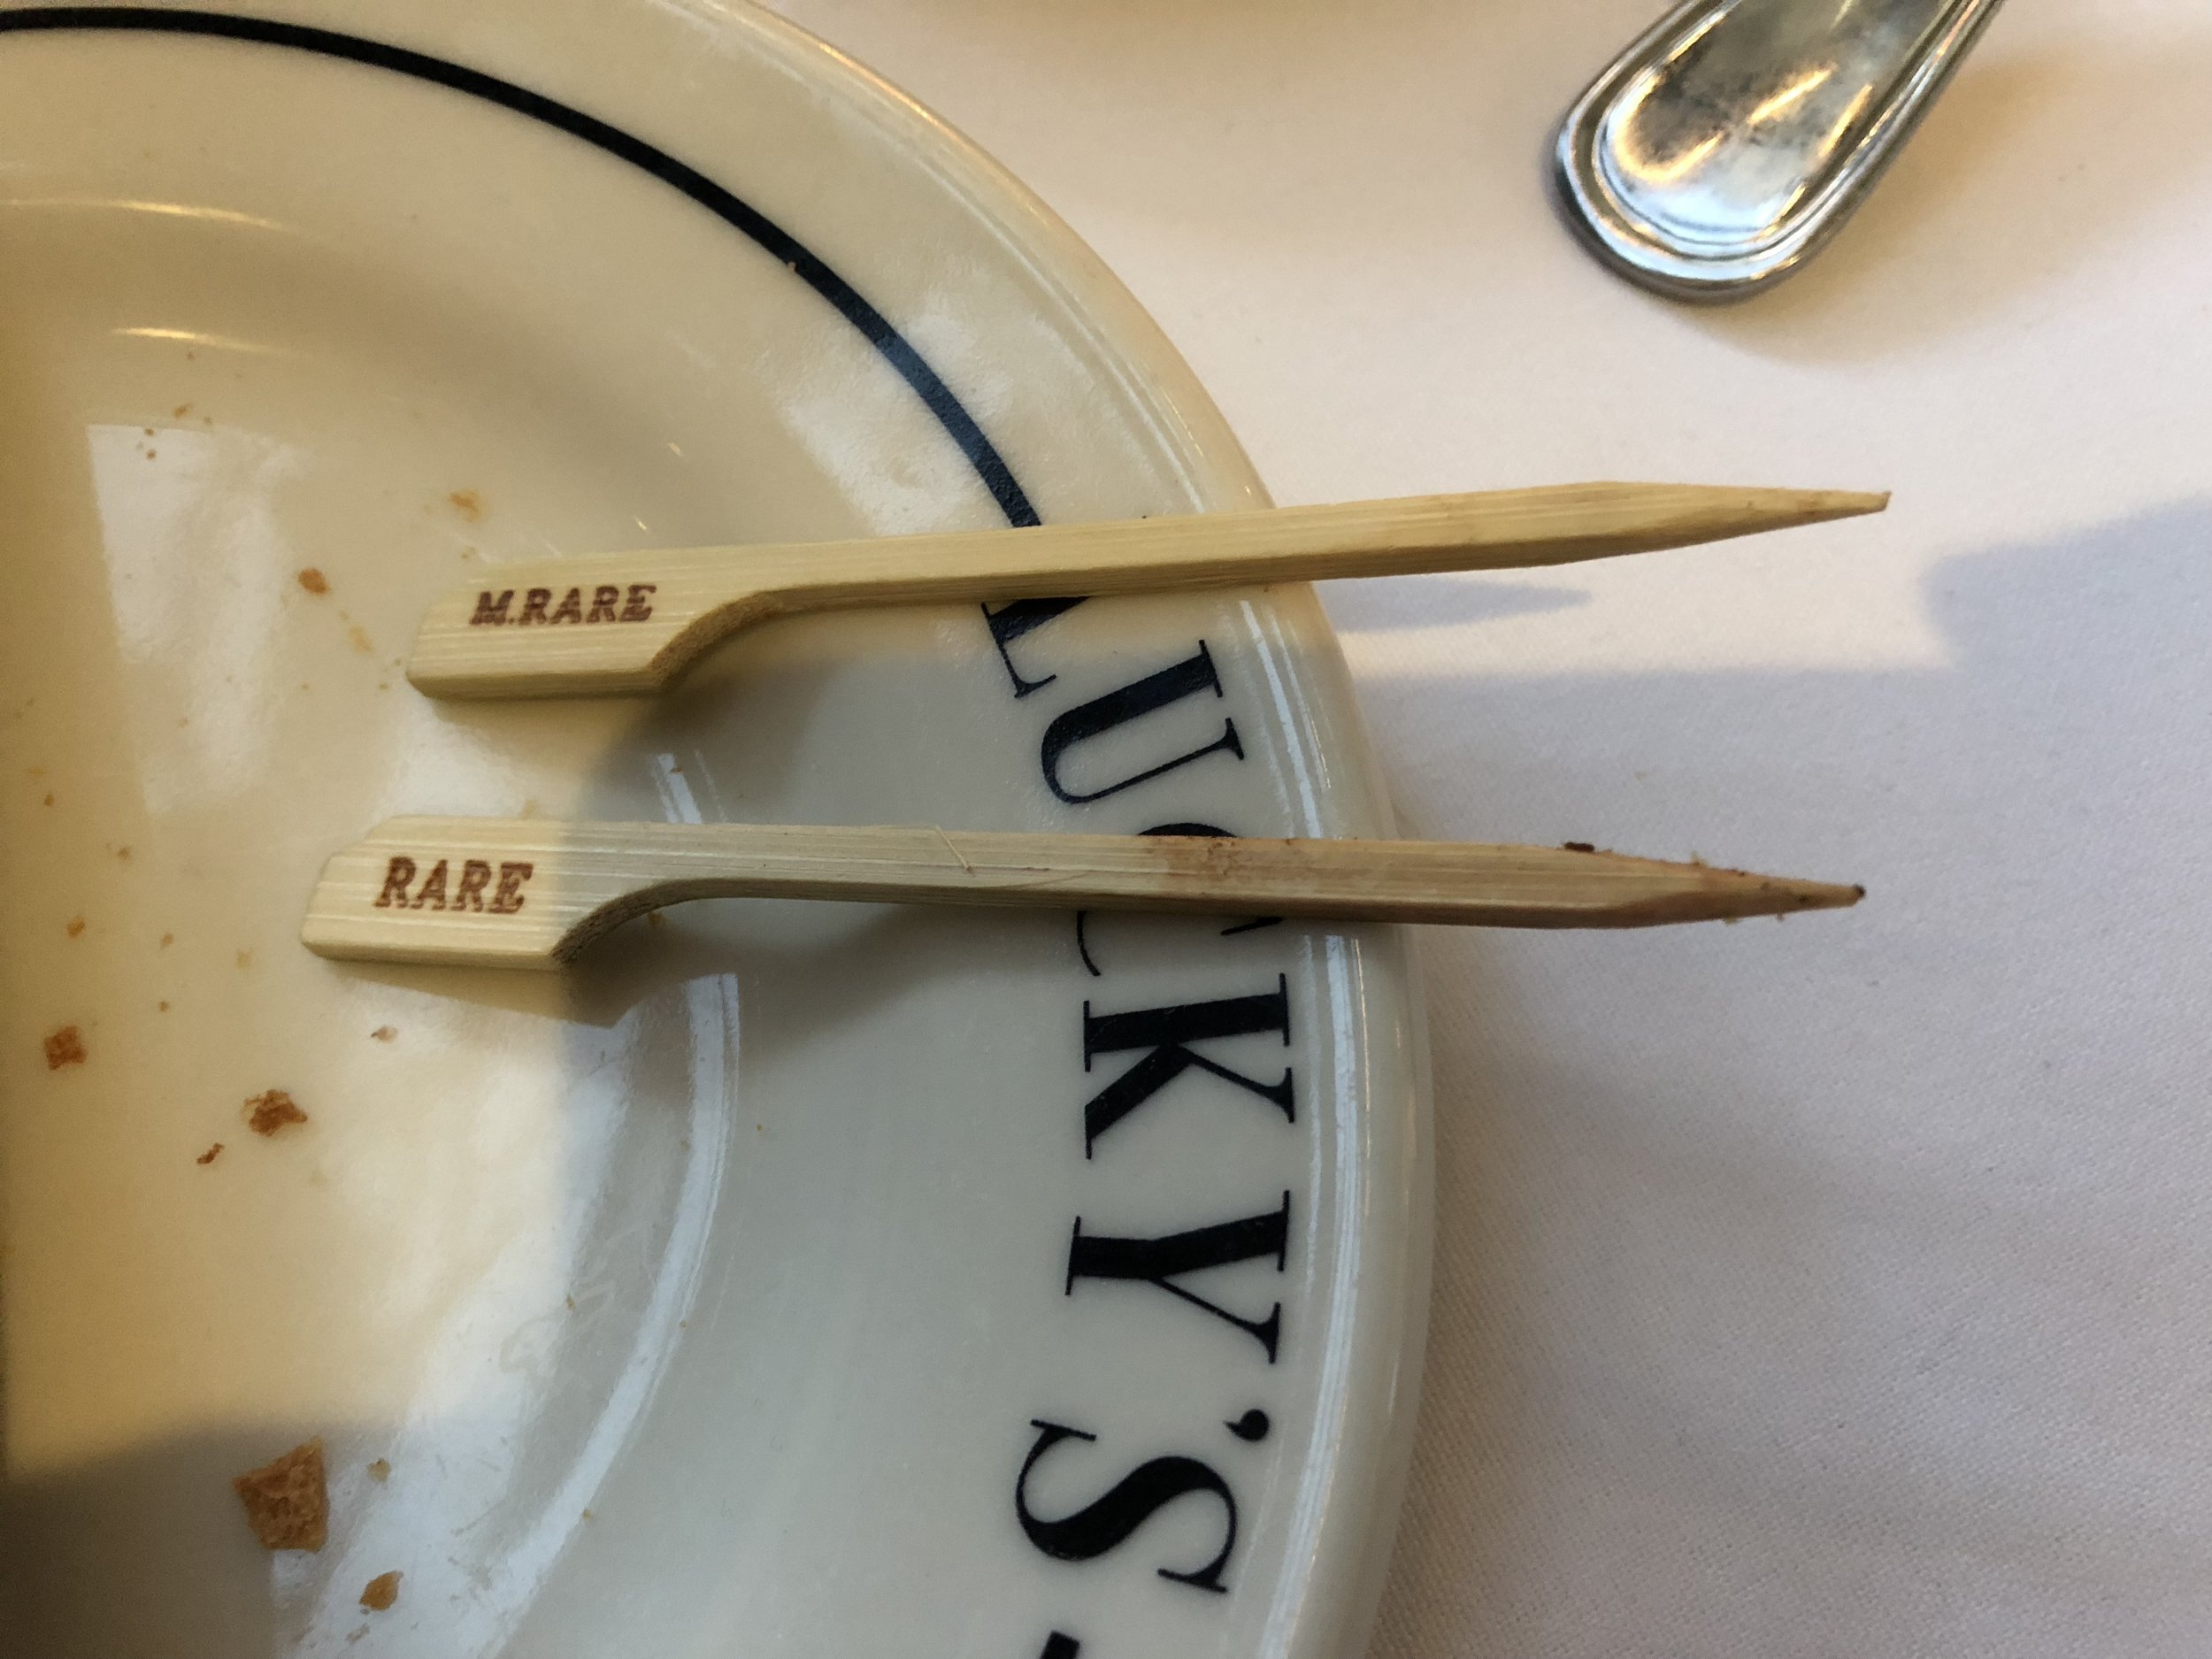 "Two small wooden flags rest on a plate, one says ""M.Rare"" and the other reads ""Rare."""